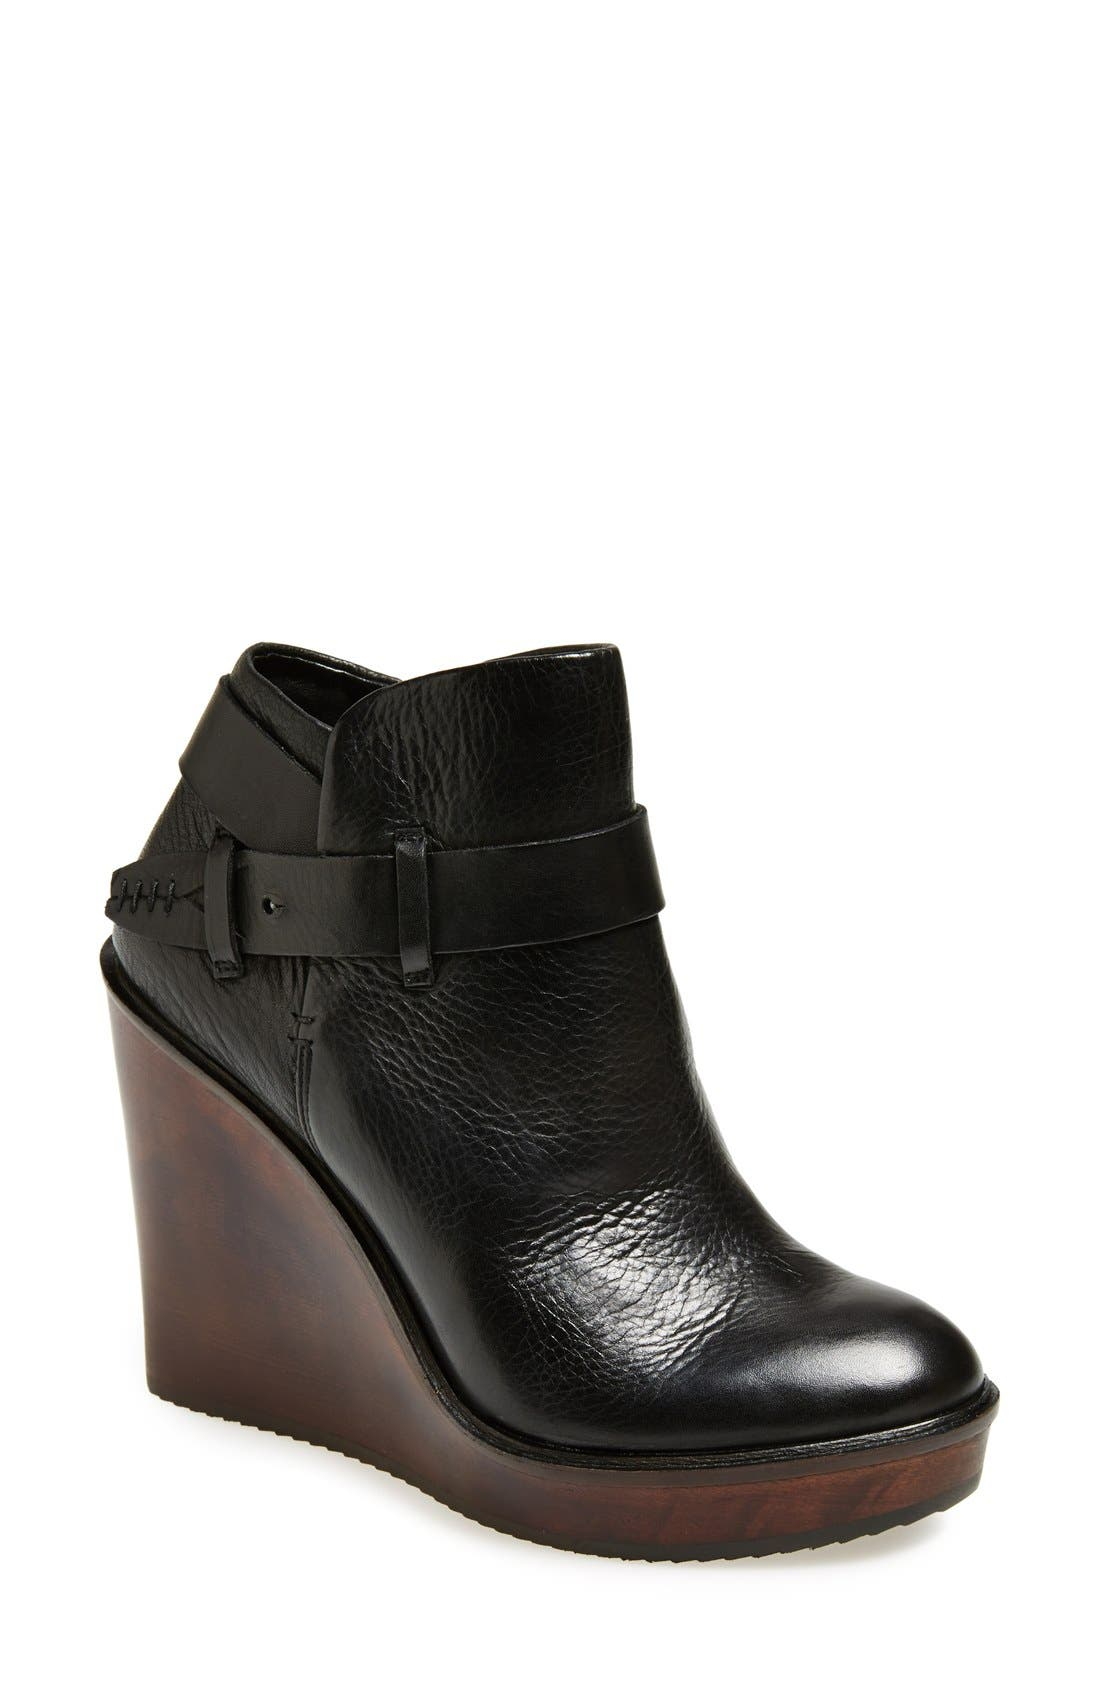 Main Image - Dolce Vita 'Colie' Wedge Bootie (Women)